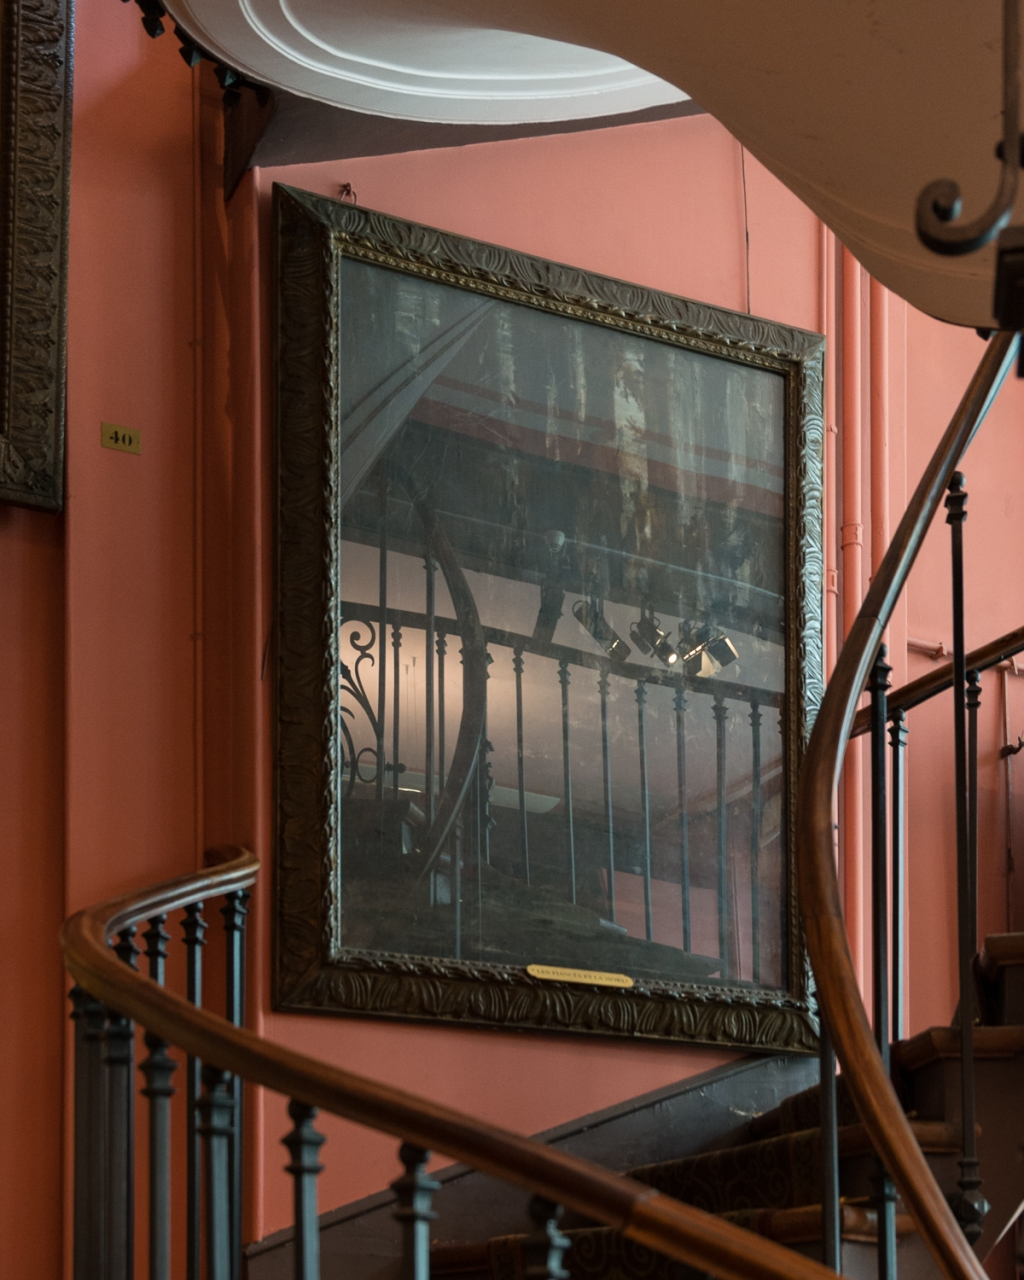 FRANÇOIS CAVELIER Museum Gustave Moreau <i>Staircase</i>. France. MONOCLE